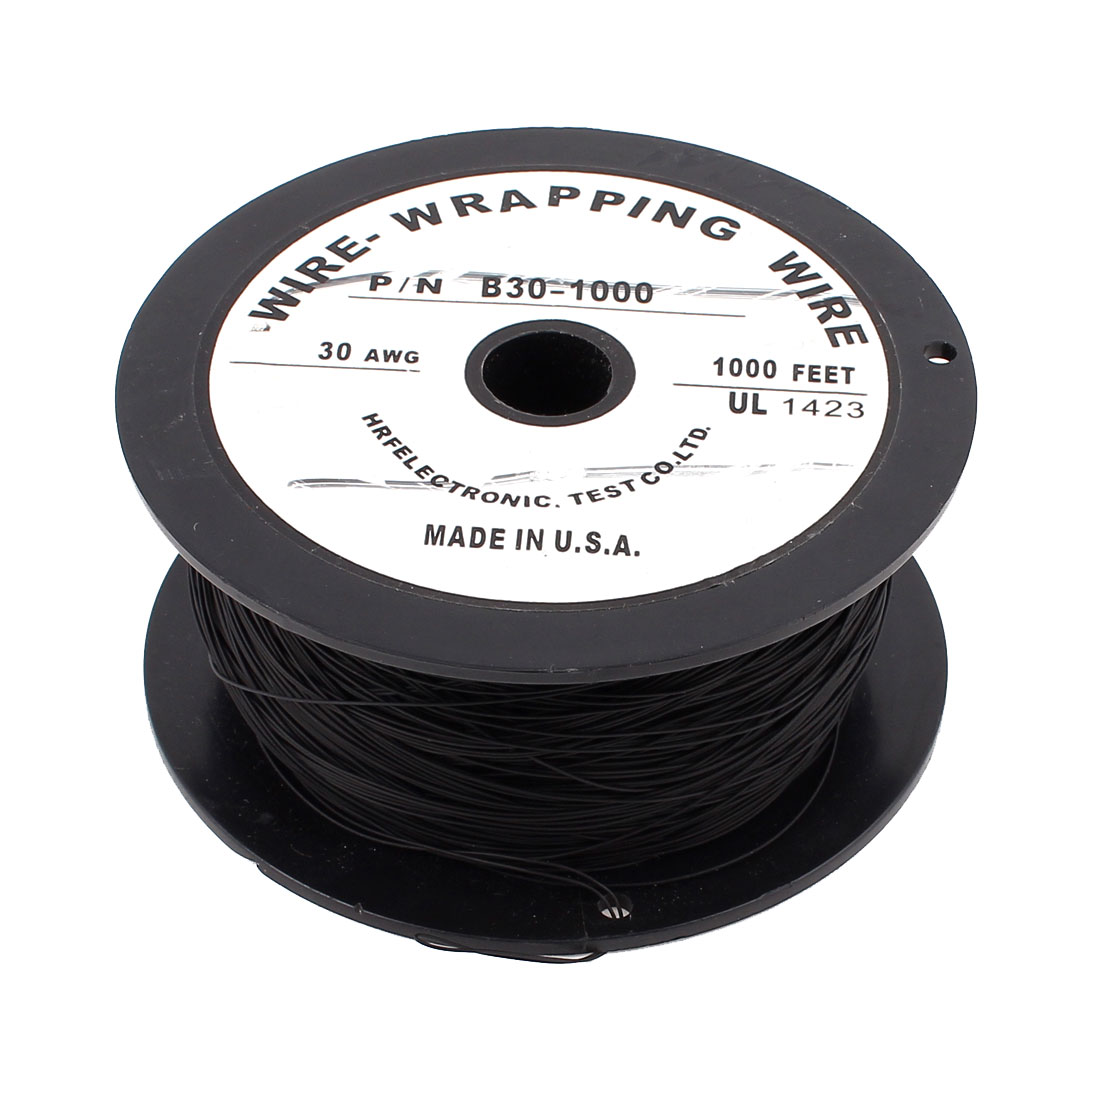 90m 295Ft 200C Flexible PVDF Wire-Wrapping Wire 30AWG Gauge Cable Cord Roll Black